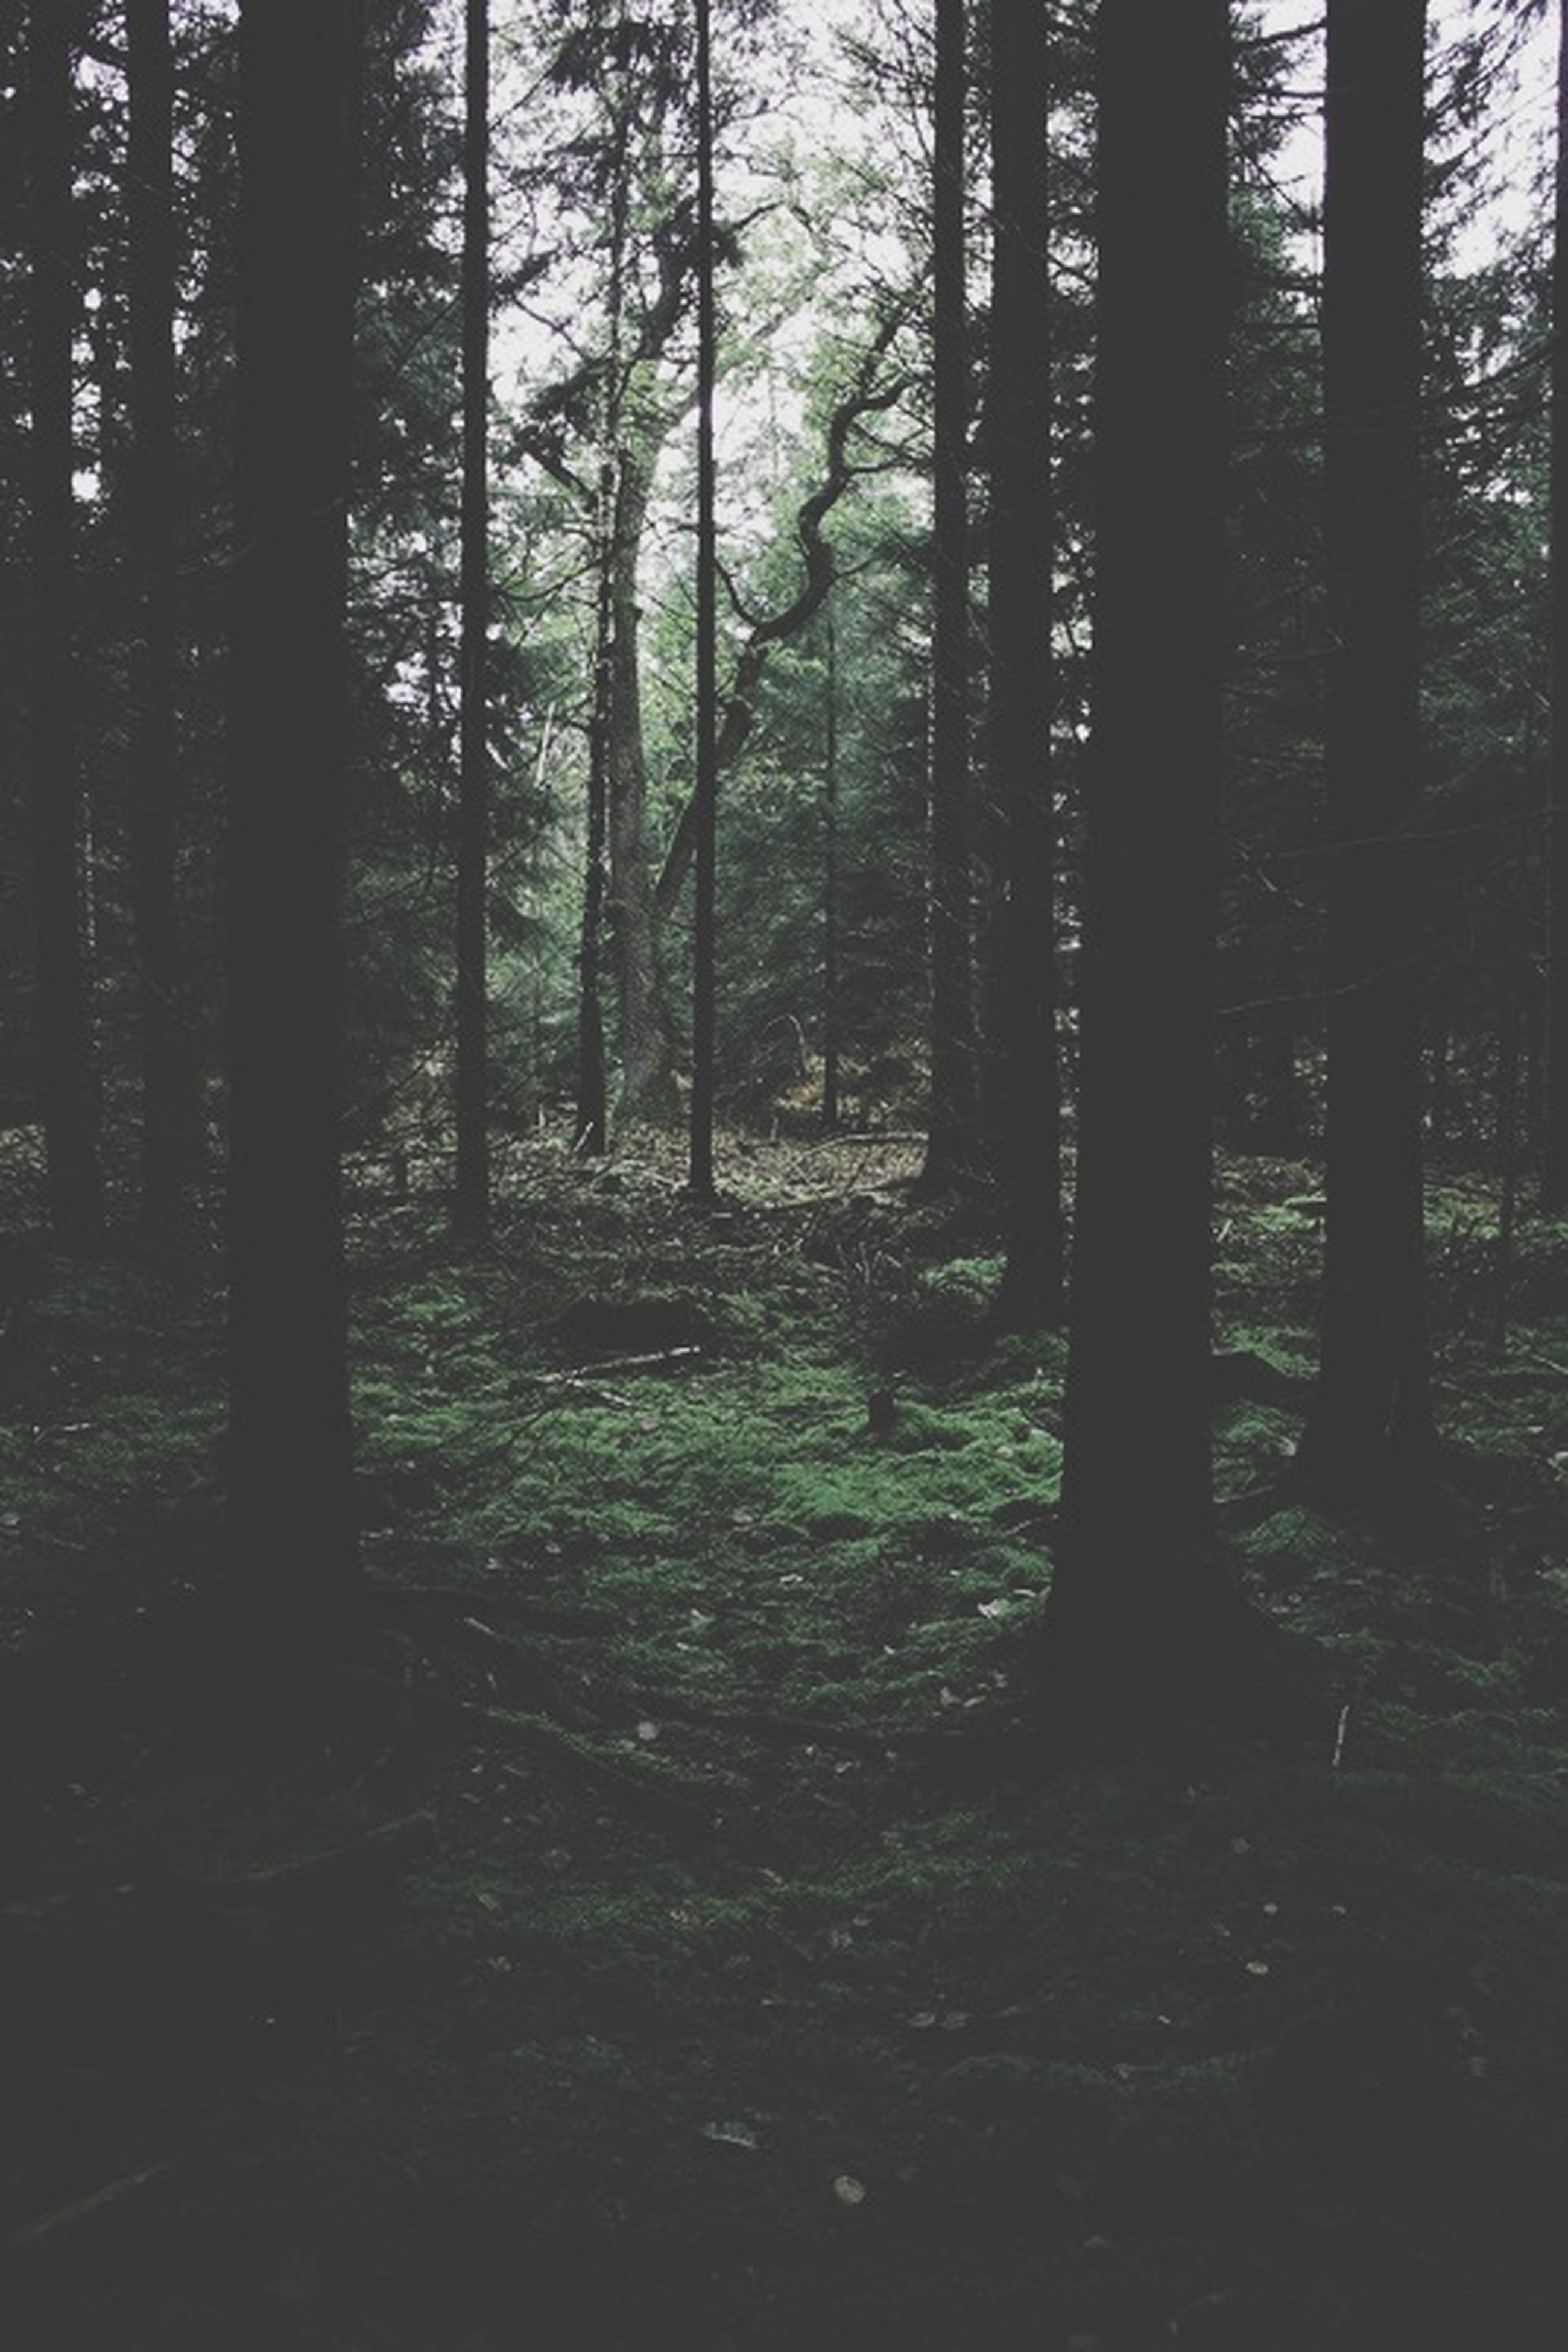 tree, forest, tree trunk, woodland, tranquility, tranquil scene, growth, nature, beauty in nature, scenics, non-urban scene, landscape, branch, outdoors, day, no people, sunlight, non urban scene, woods, idyllic